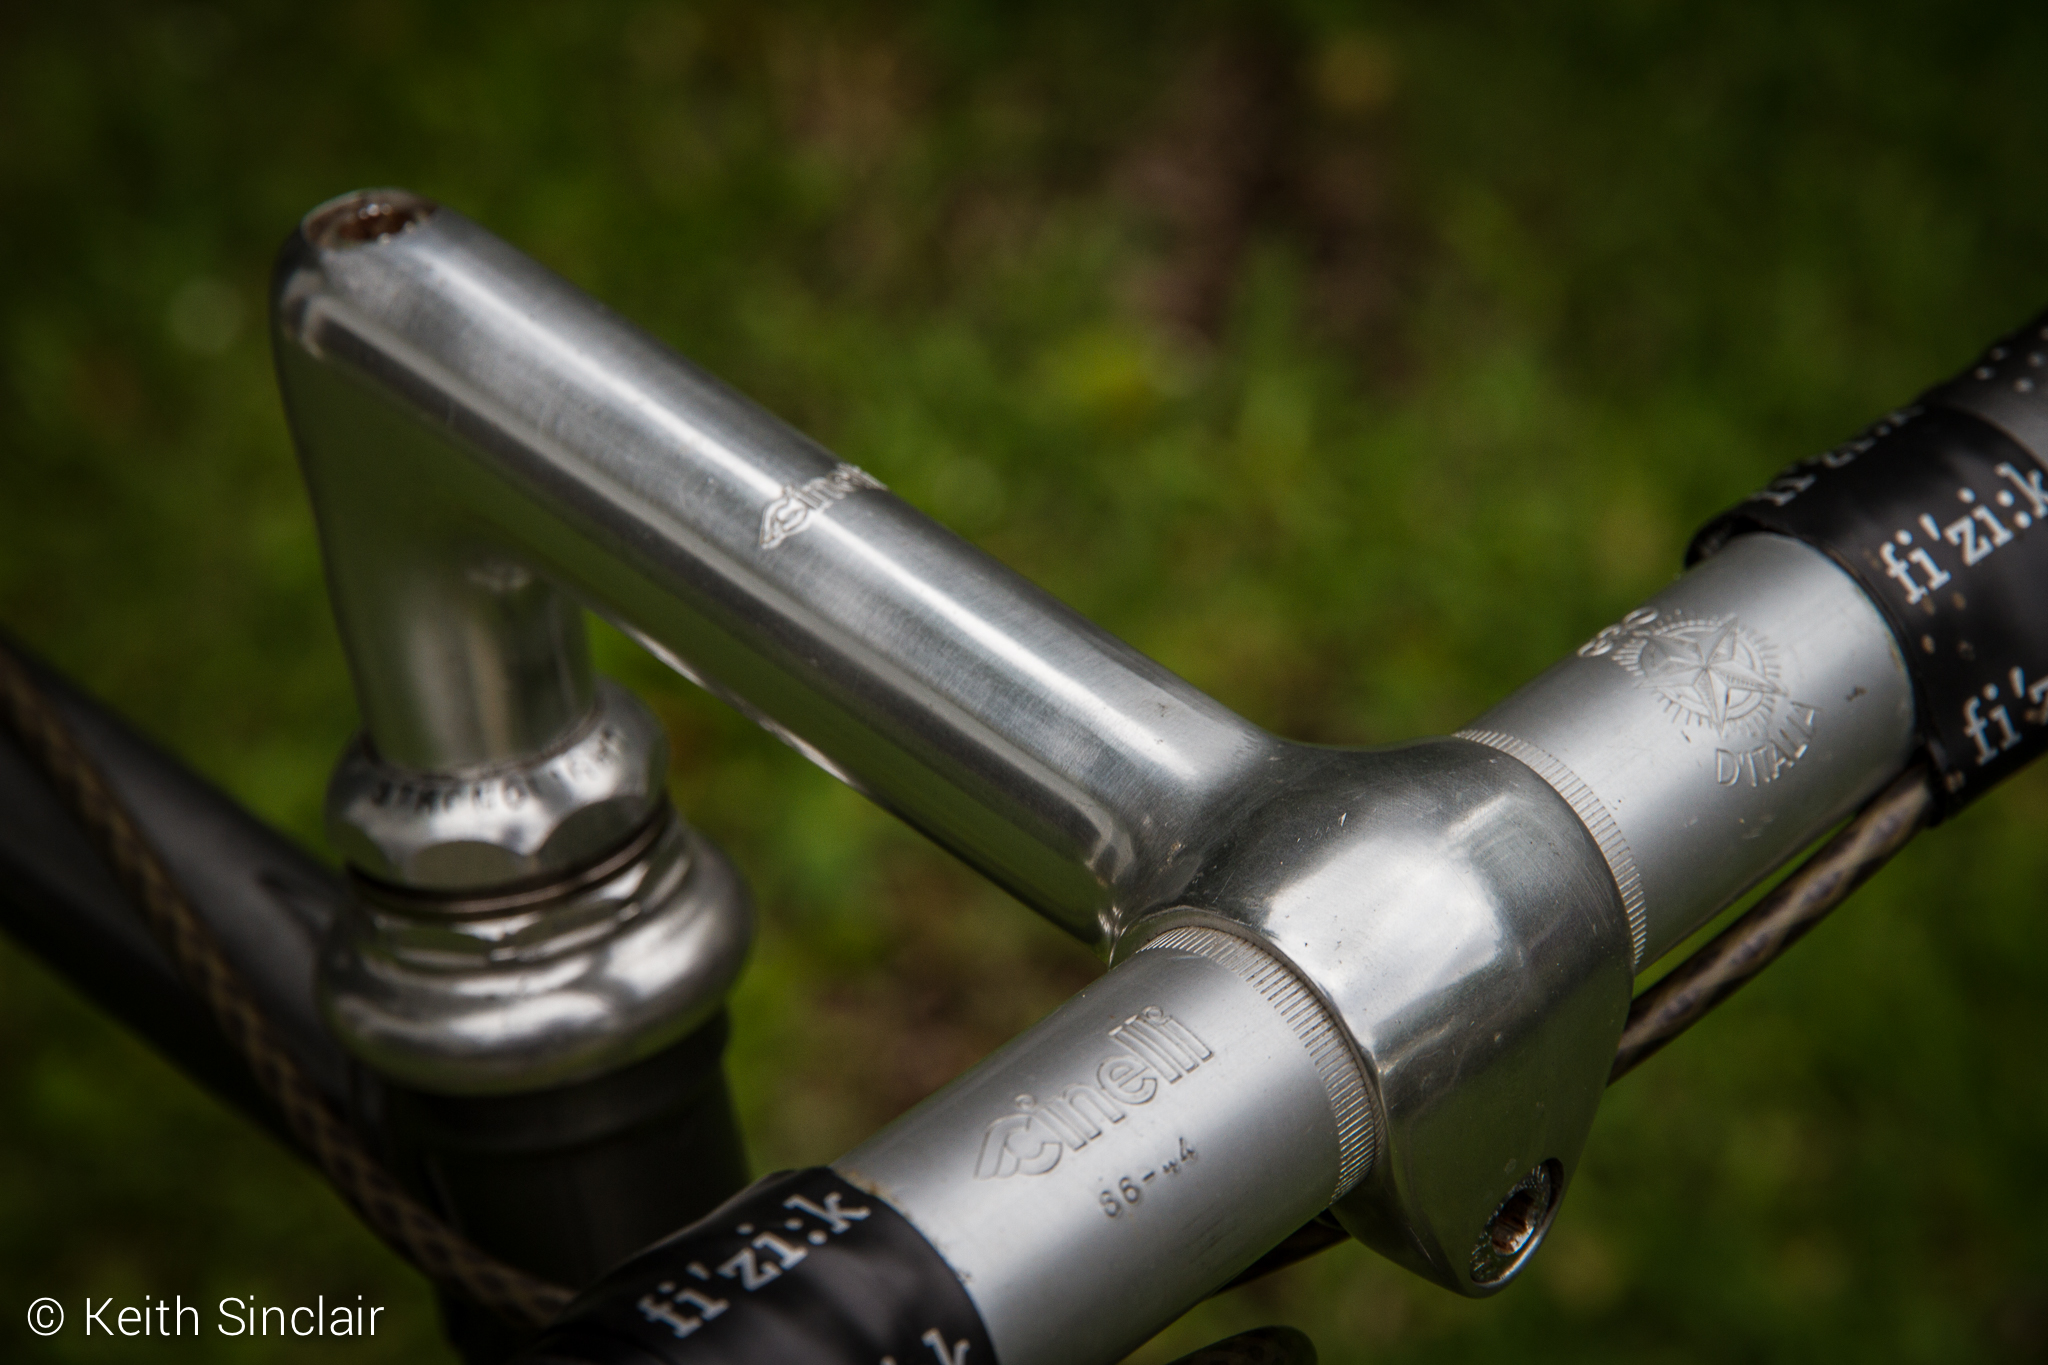 Cinelli Bar and Quill Stem